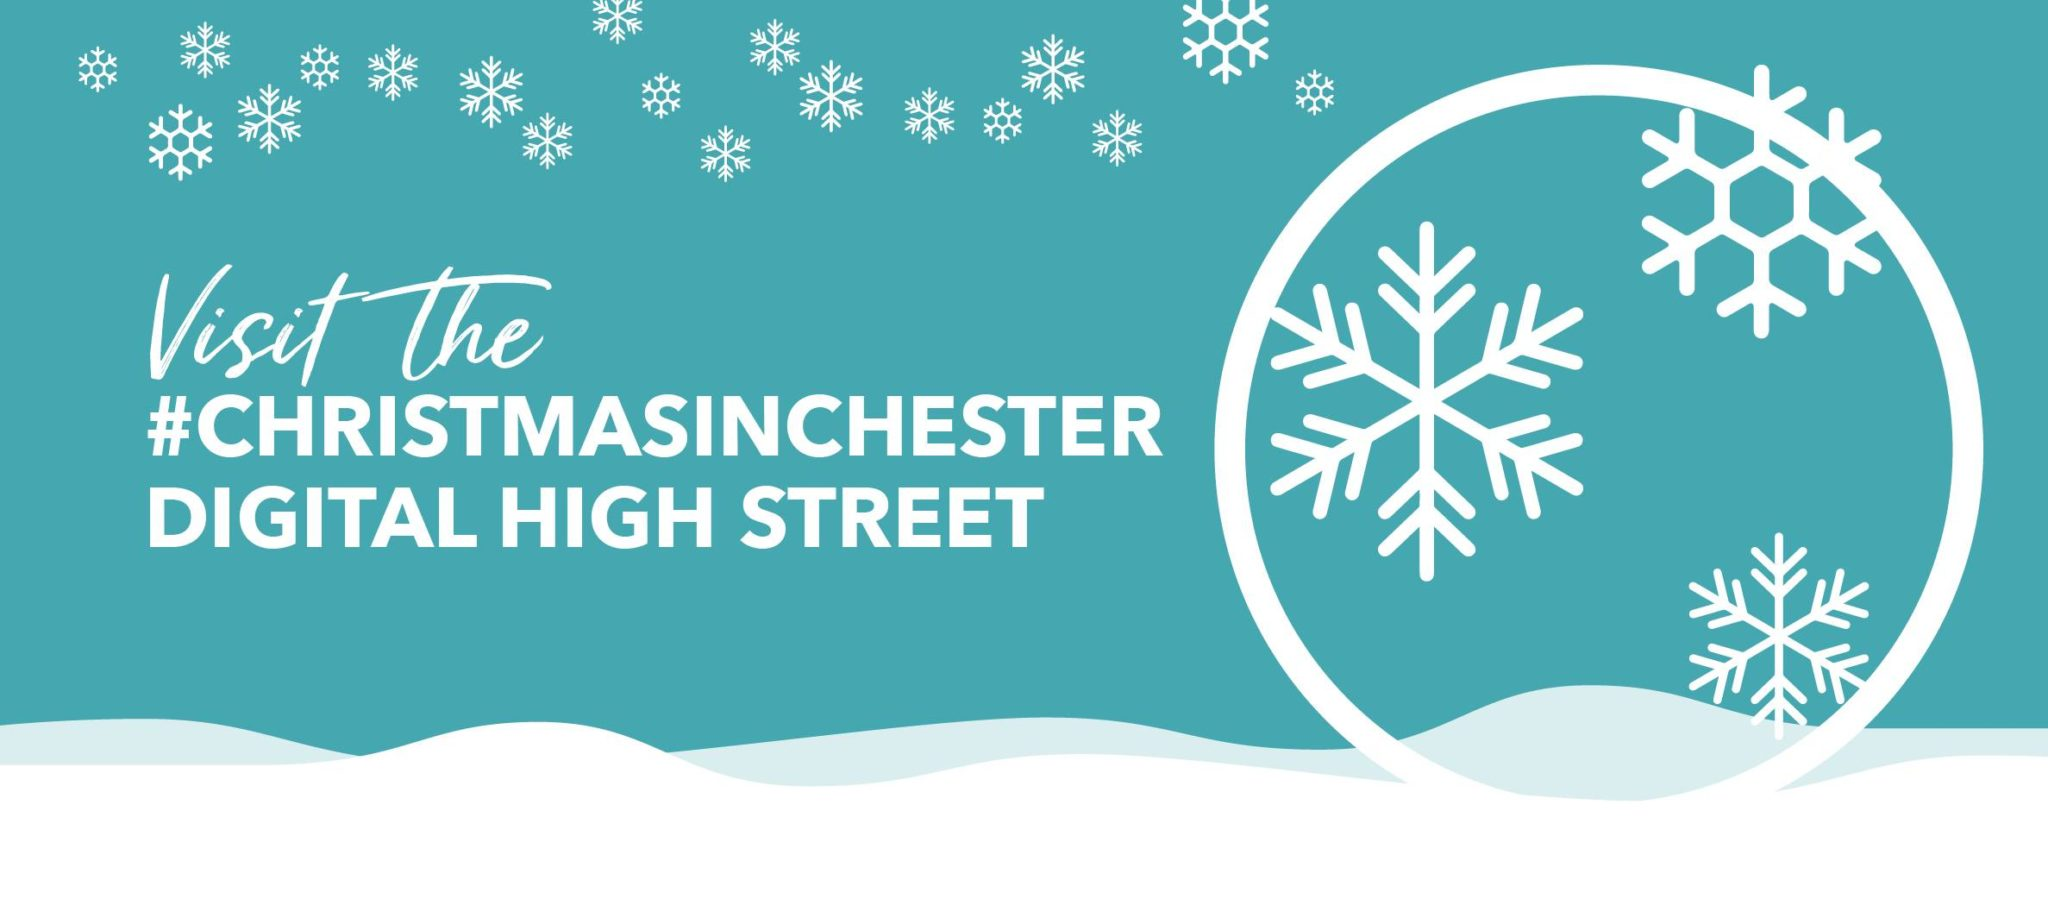 Visit the #christmasinchester digital high street